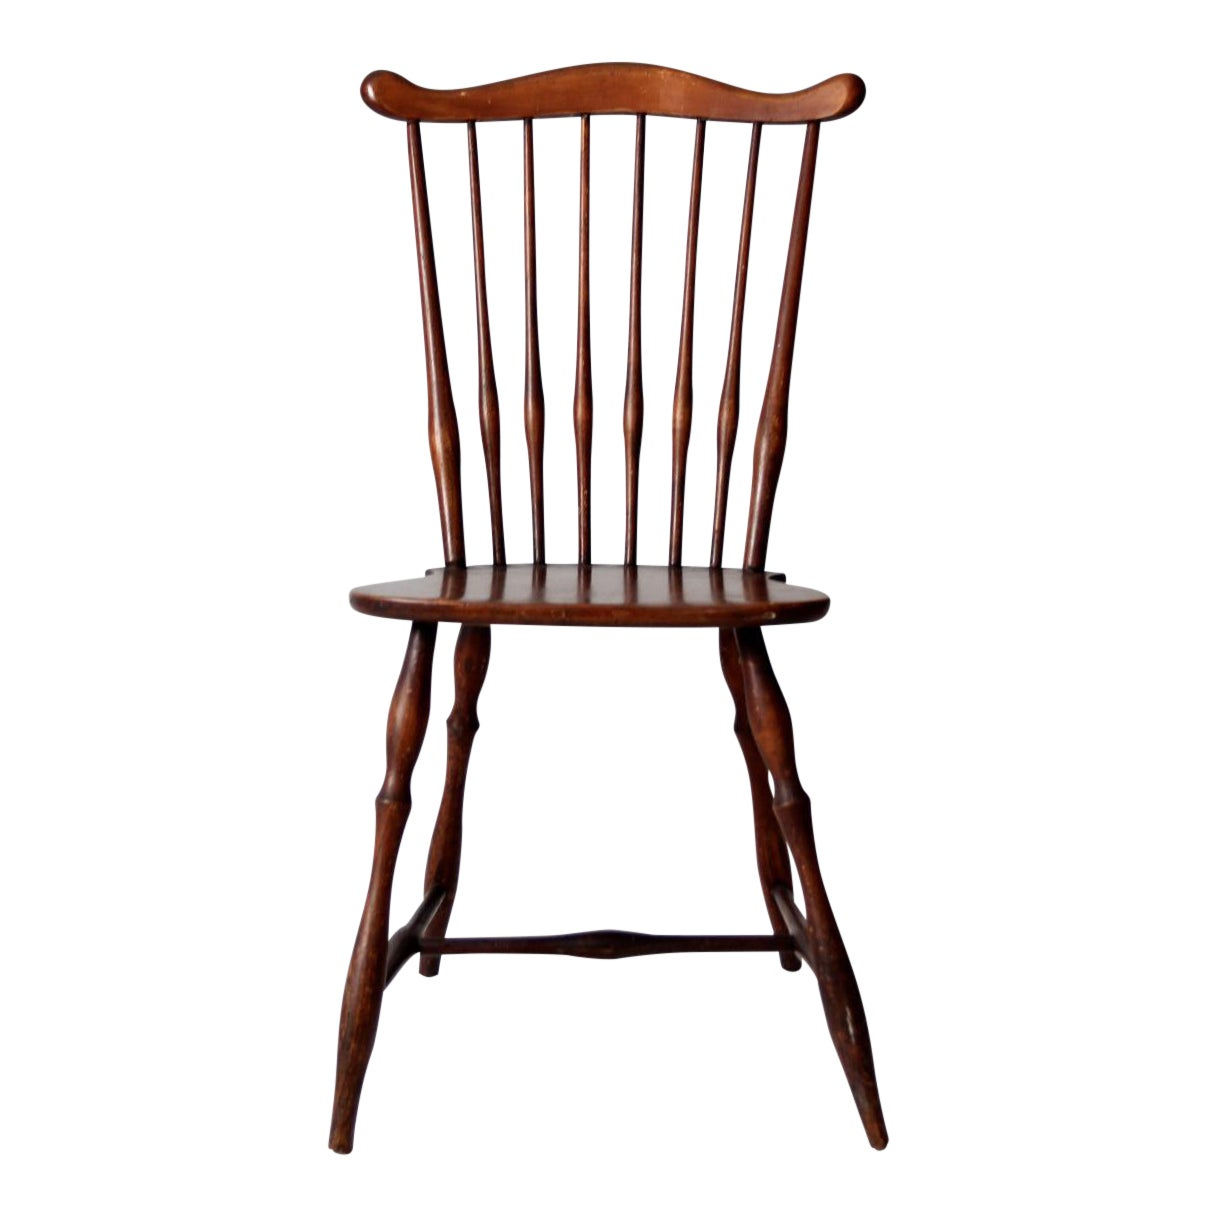 Antique Windsor Chairs Dining: Antique Fan Back Windsor Chair